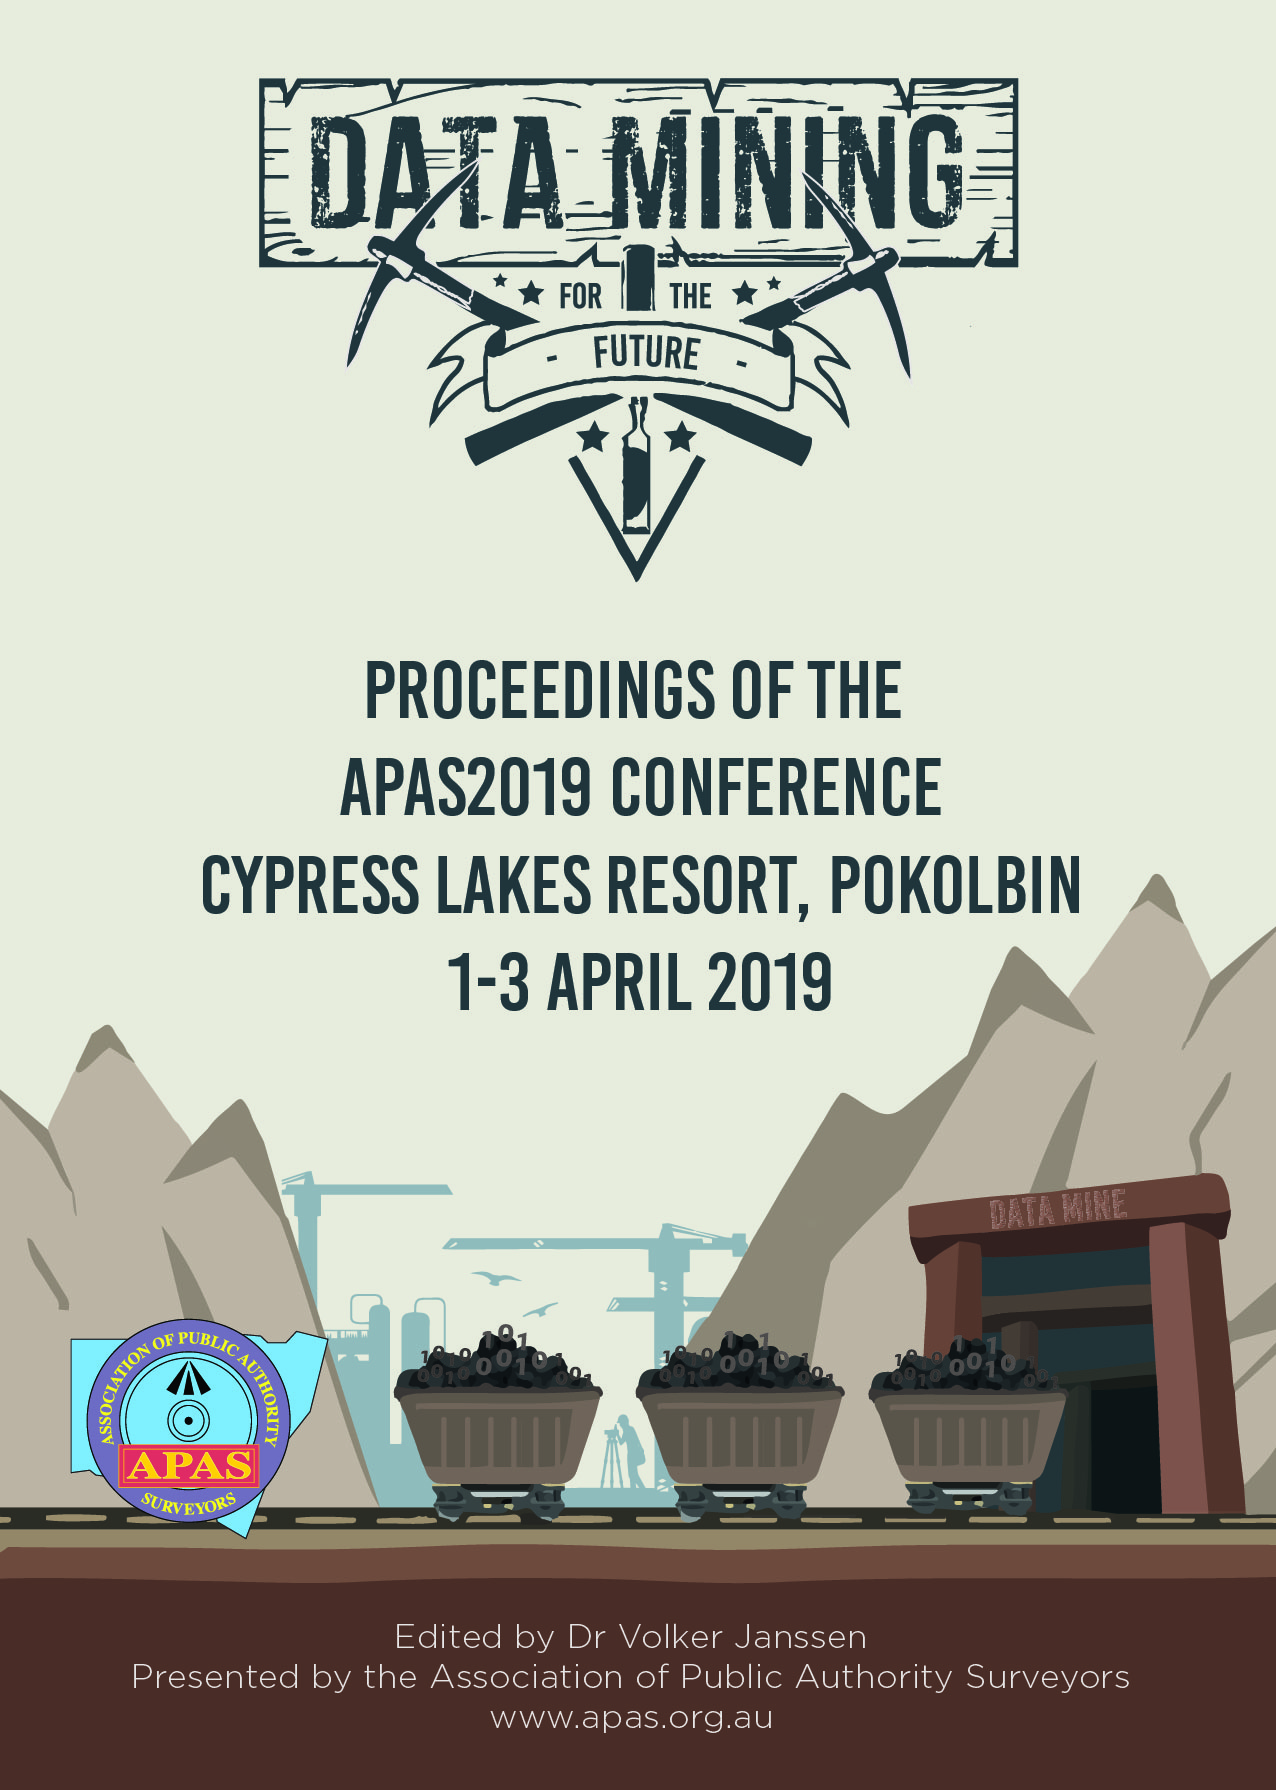 APAS2019 proceedings